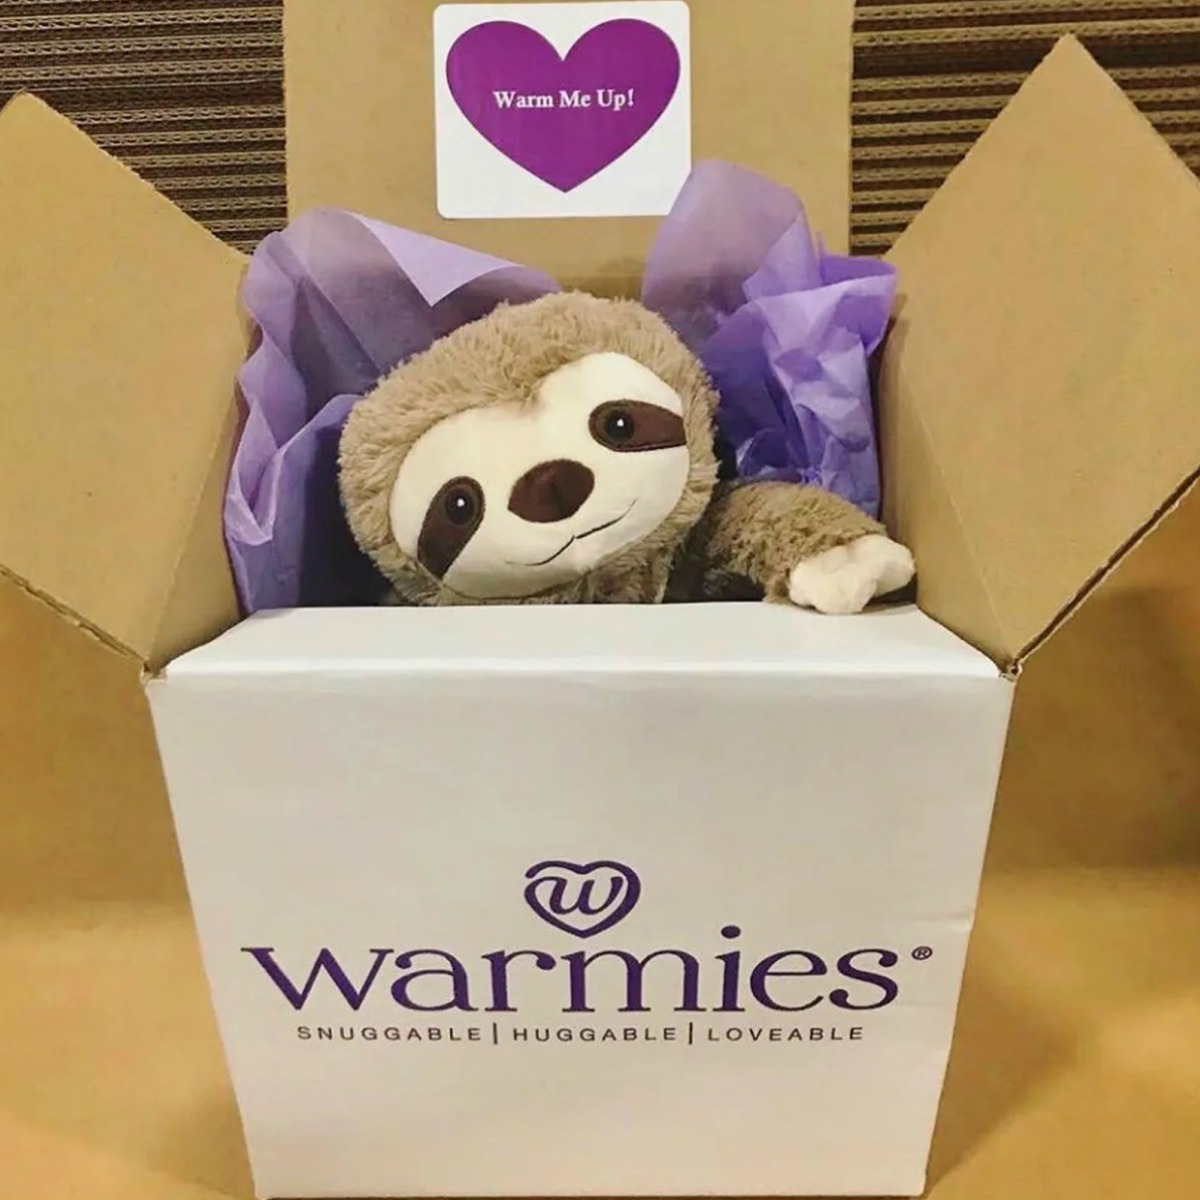 Plush sloth in a large shipping box with purple tissue paper